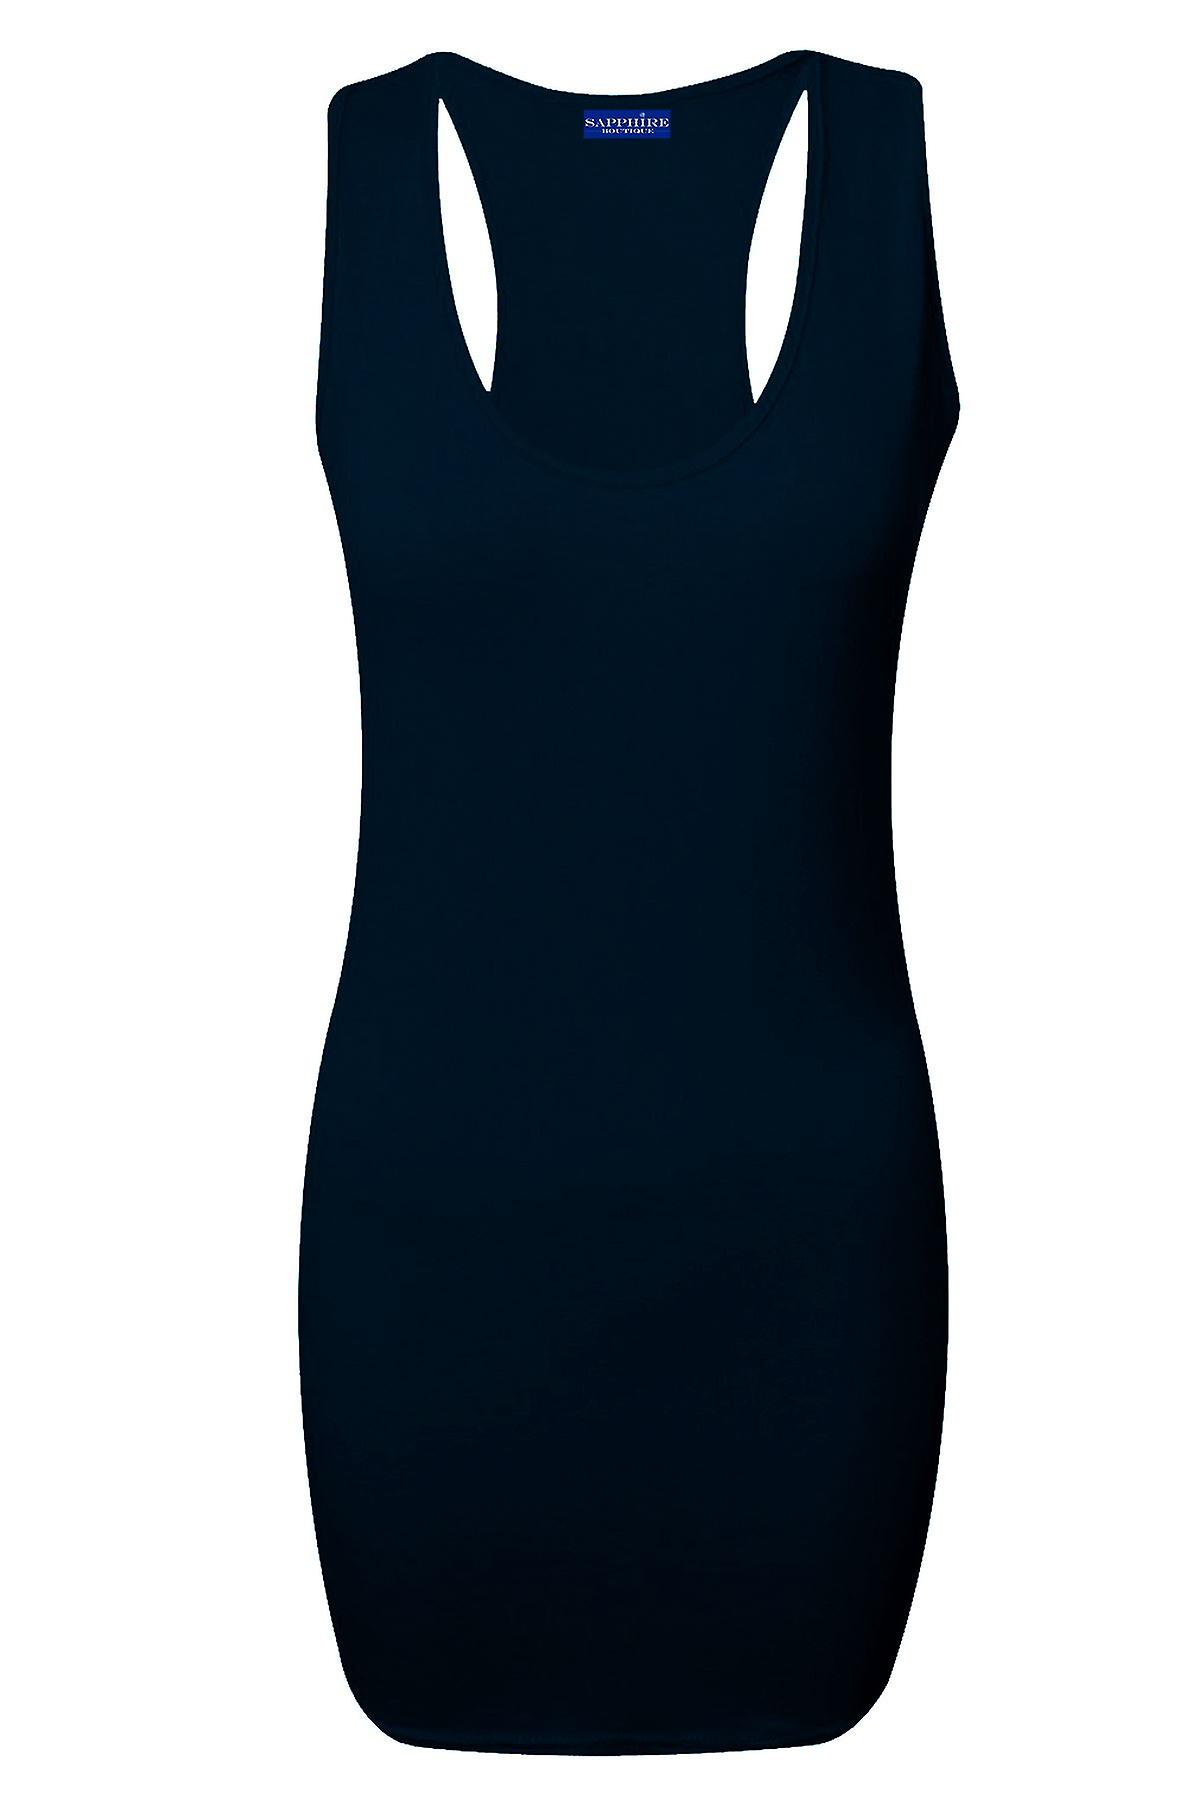 Ladies Sleeveless Bodycon Racer Back Muscle All Colours Women's Vest Top